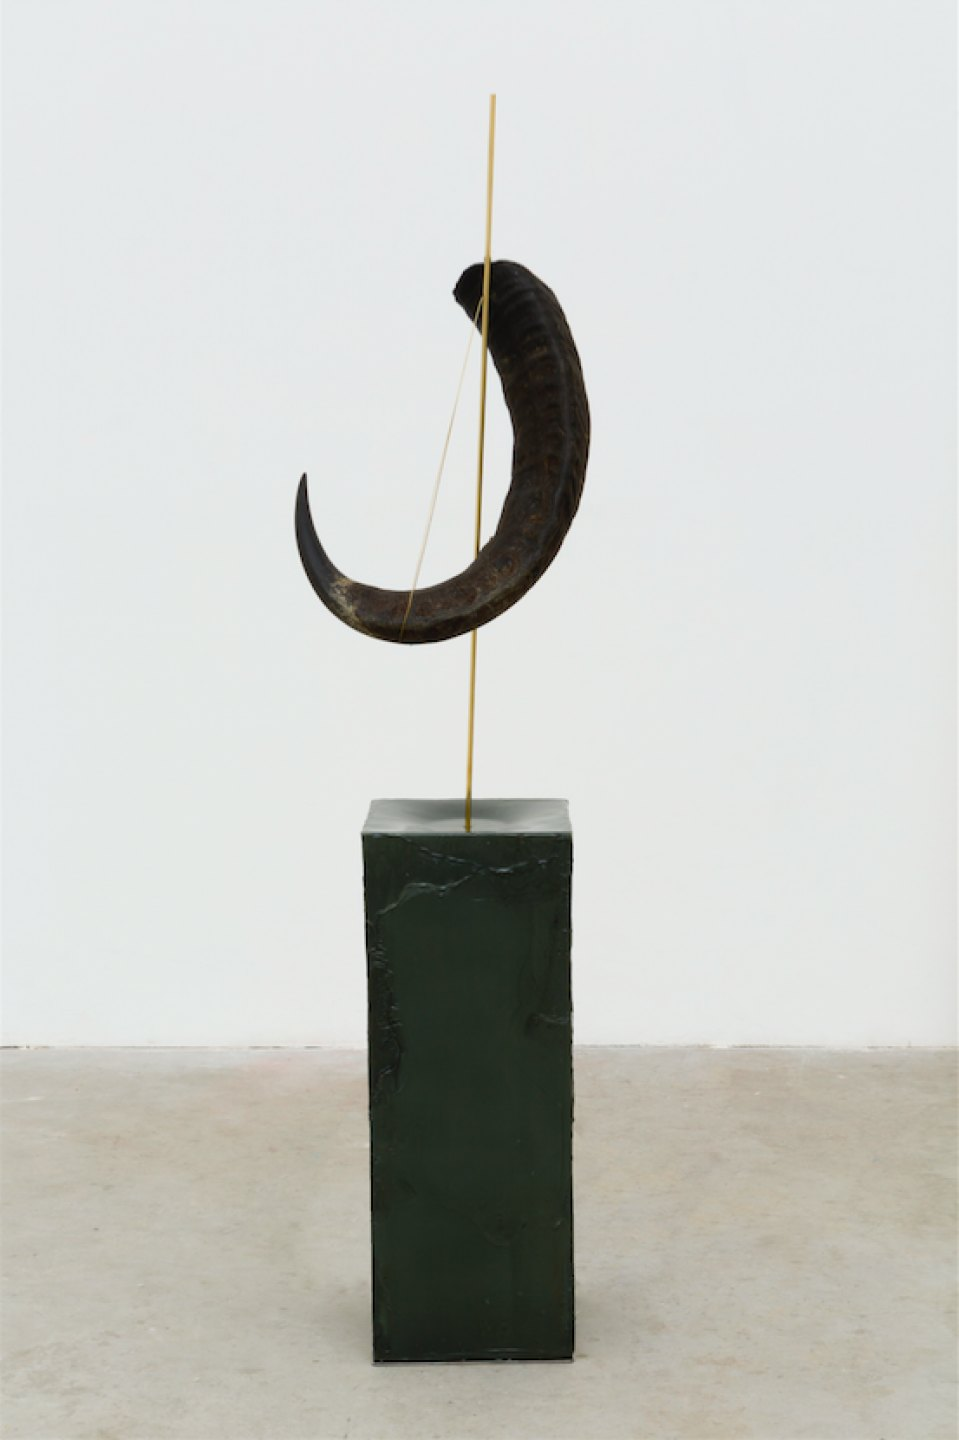 Paloma Bosquê, <em>Curva amparada (chifre),</em> 2017, block of beeswax with pitch, brass rod and horn of buffalo, 141,5 × 32 × 32 cm - Mendes Wood DM